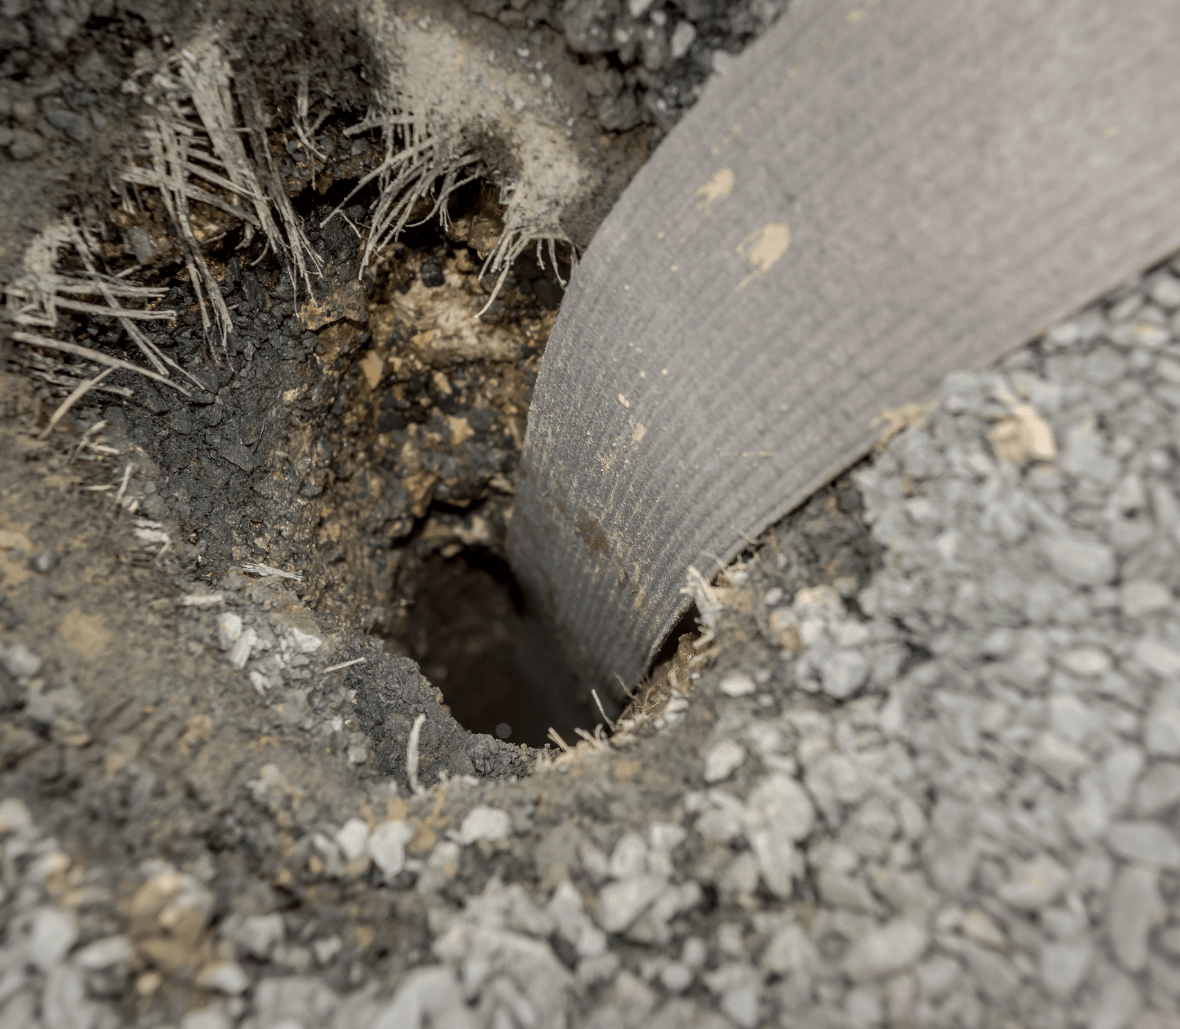 Close up of installed Colbonddrain prefabricated vertical drain installed for faster soil consolidation